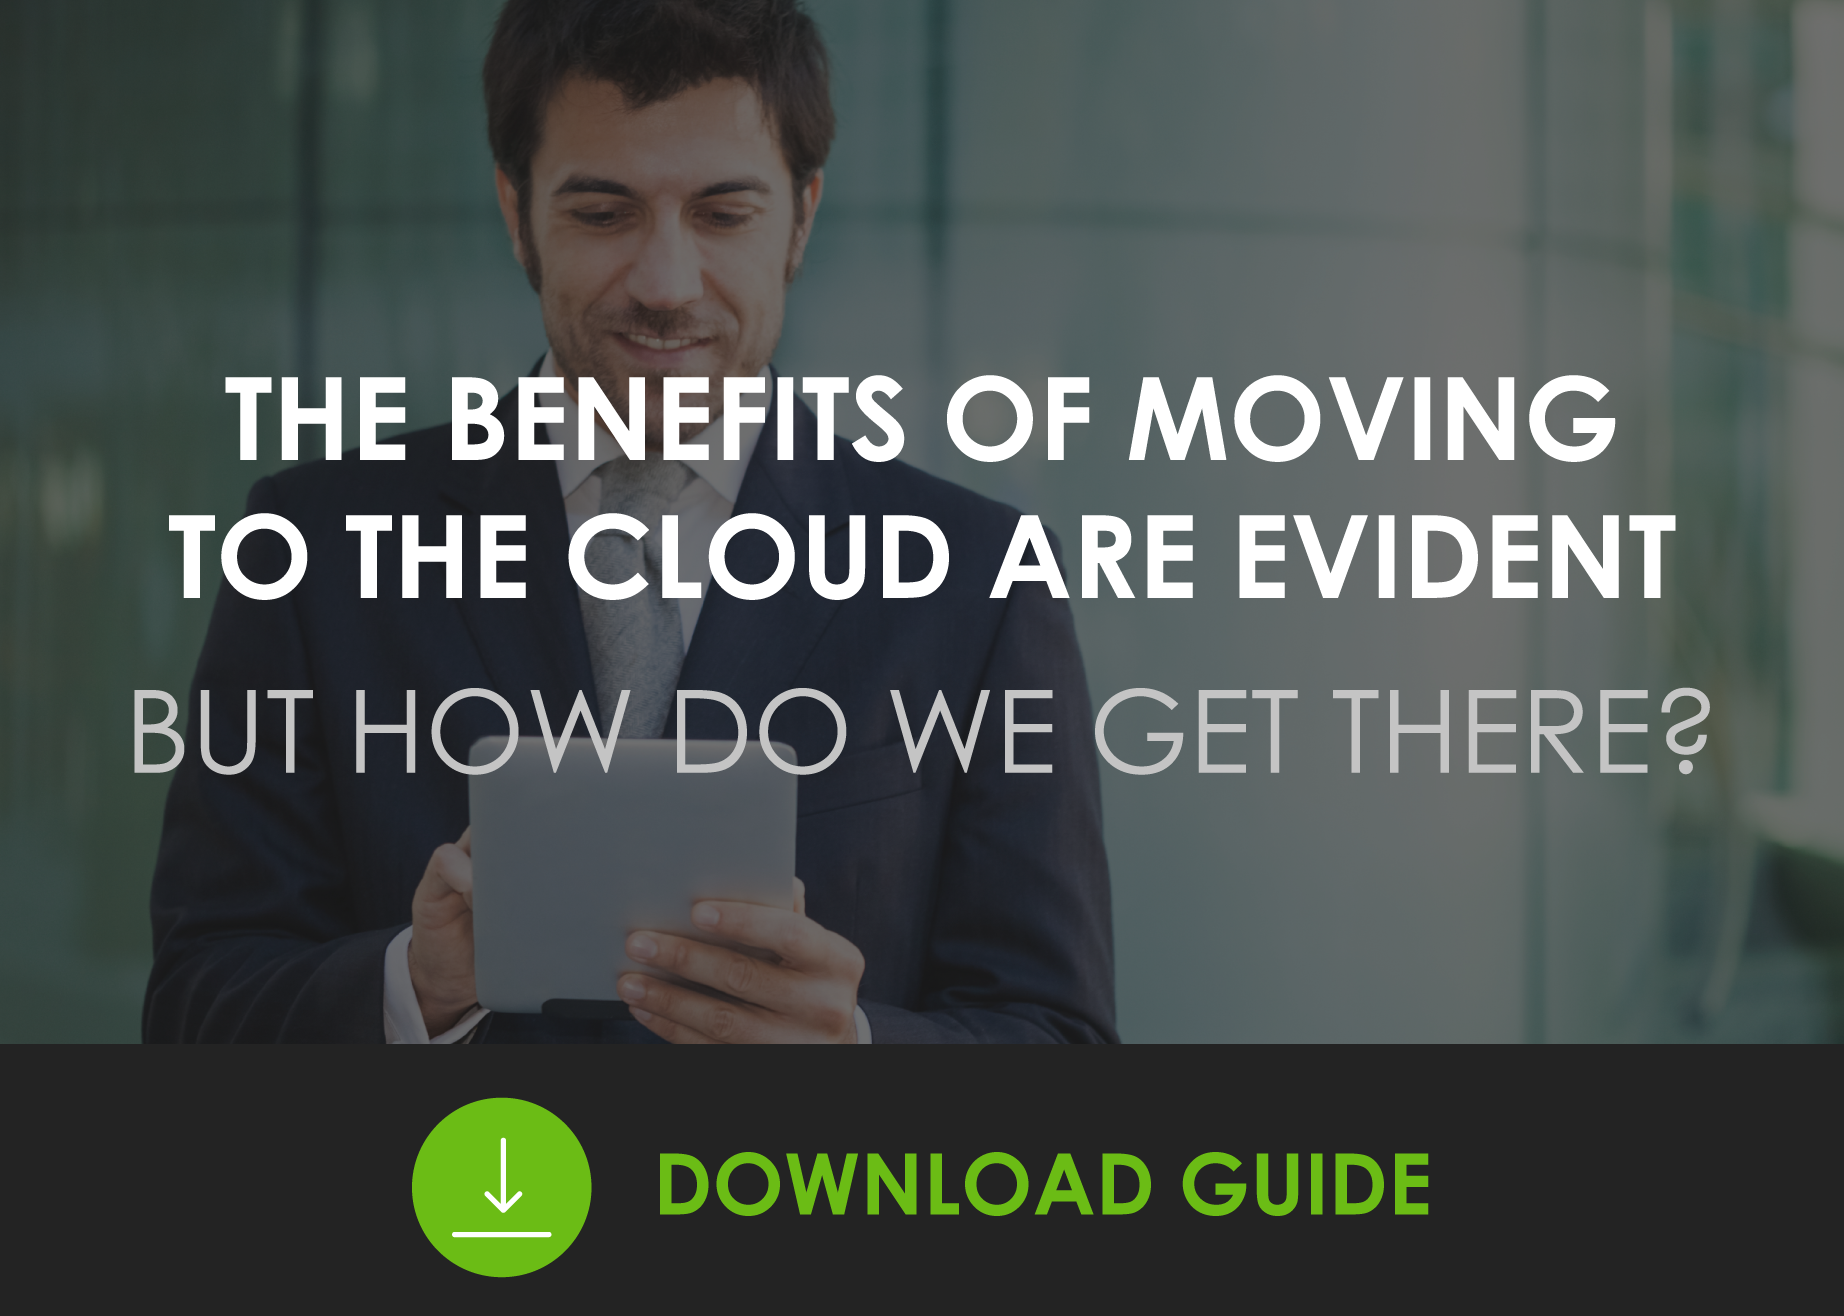 The Benefits of Moving to the Cloud are Evident